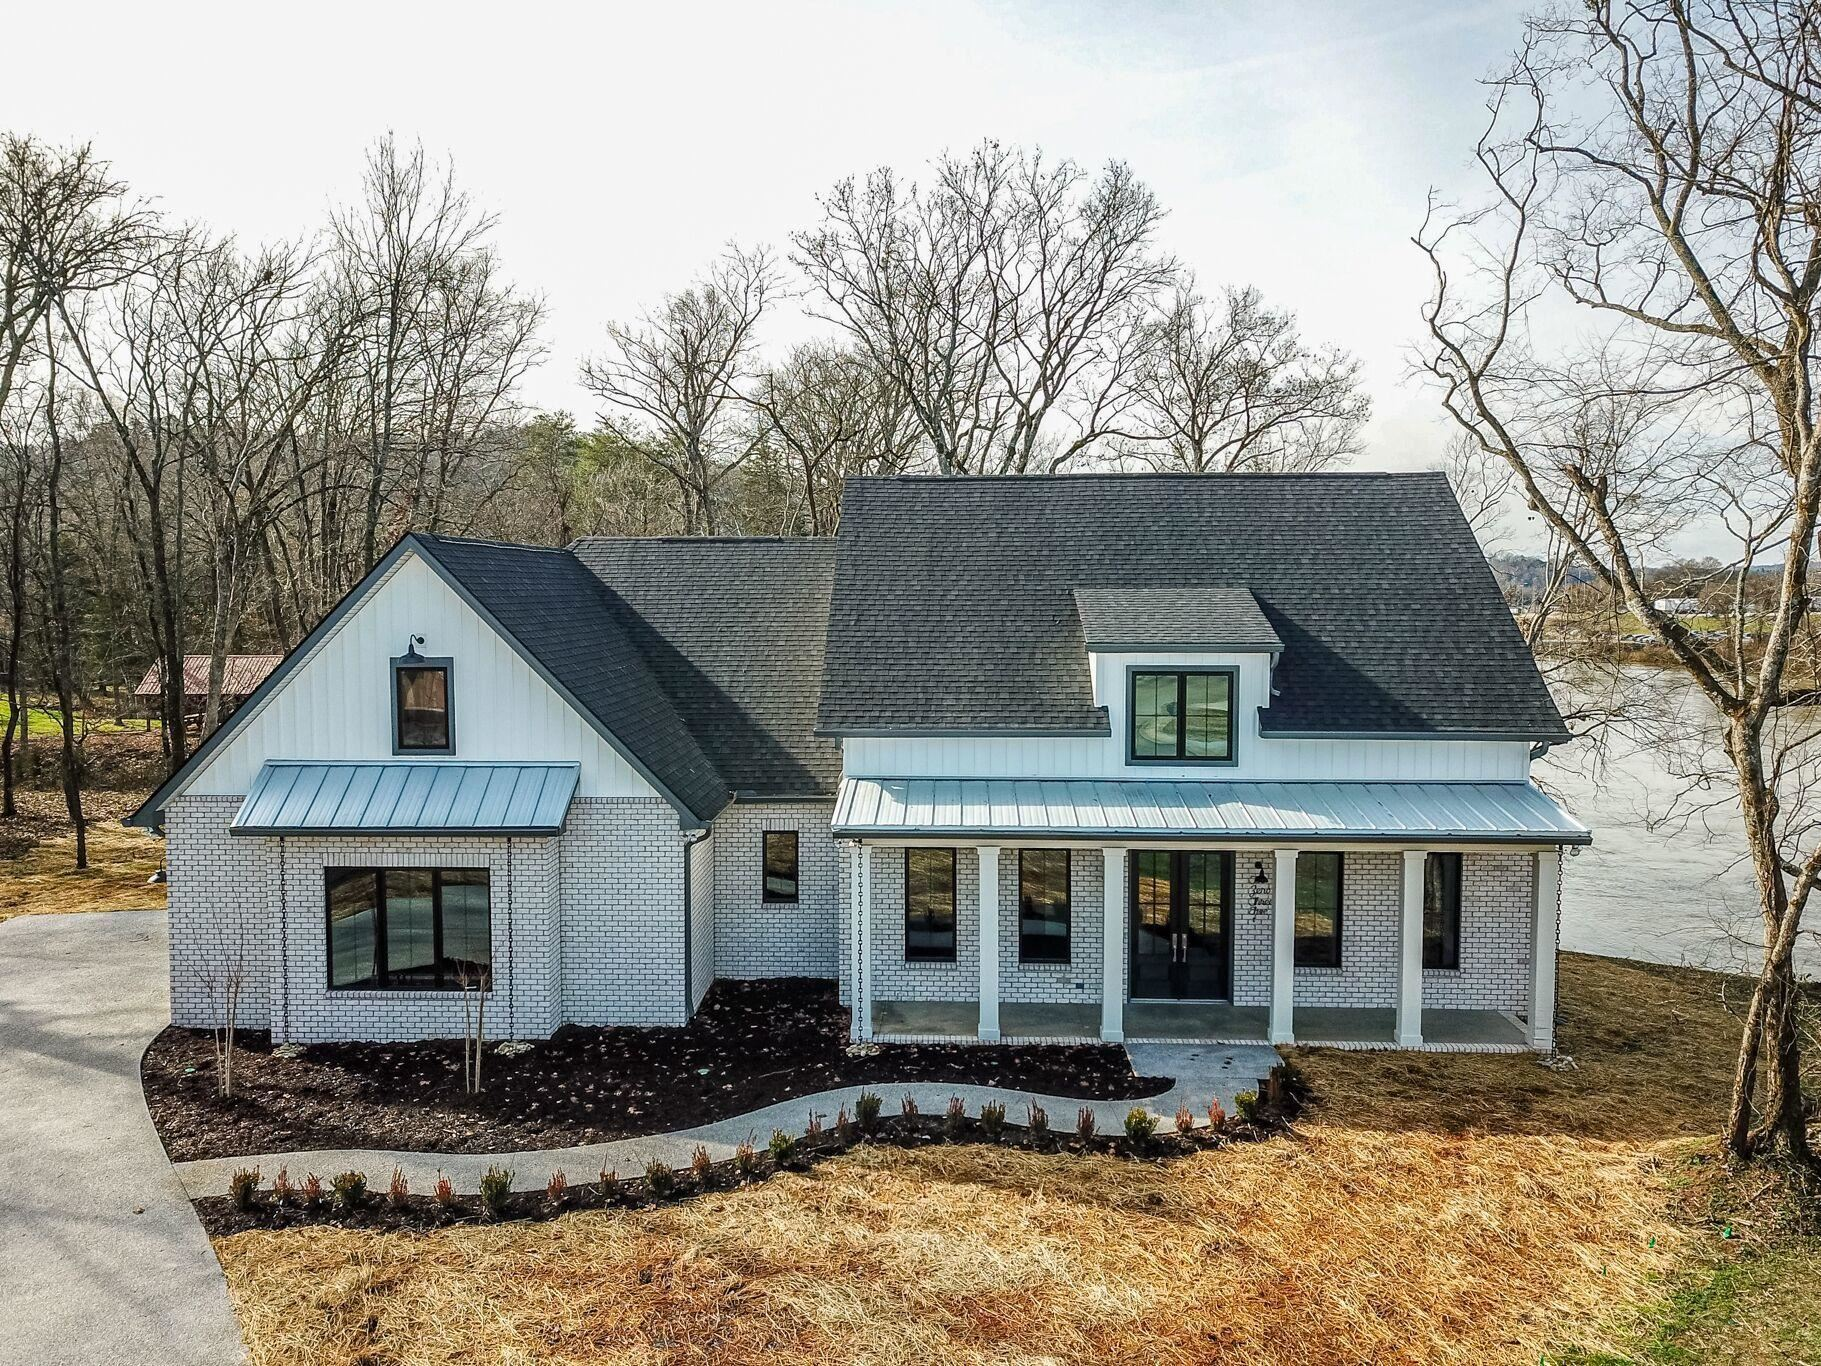 Photo for 2035 Serene Cove Way, Knoxville, TN 37920 (MLS # 1091204)